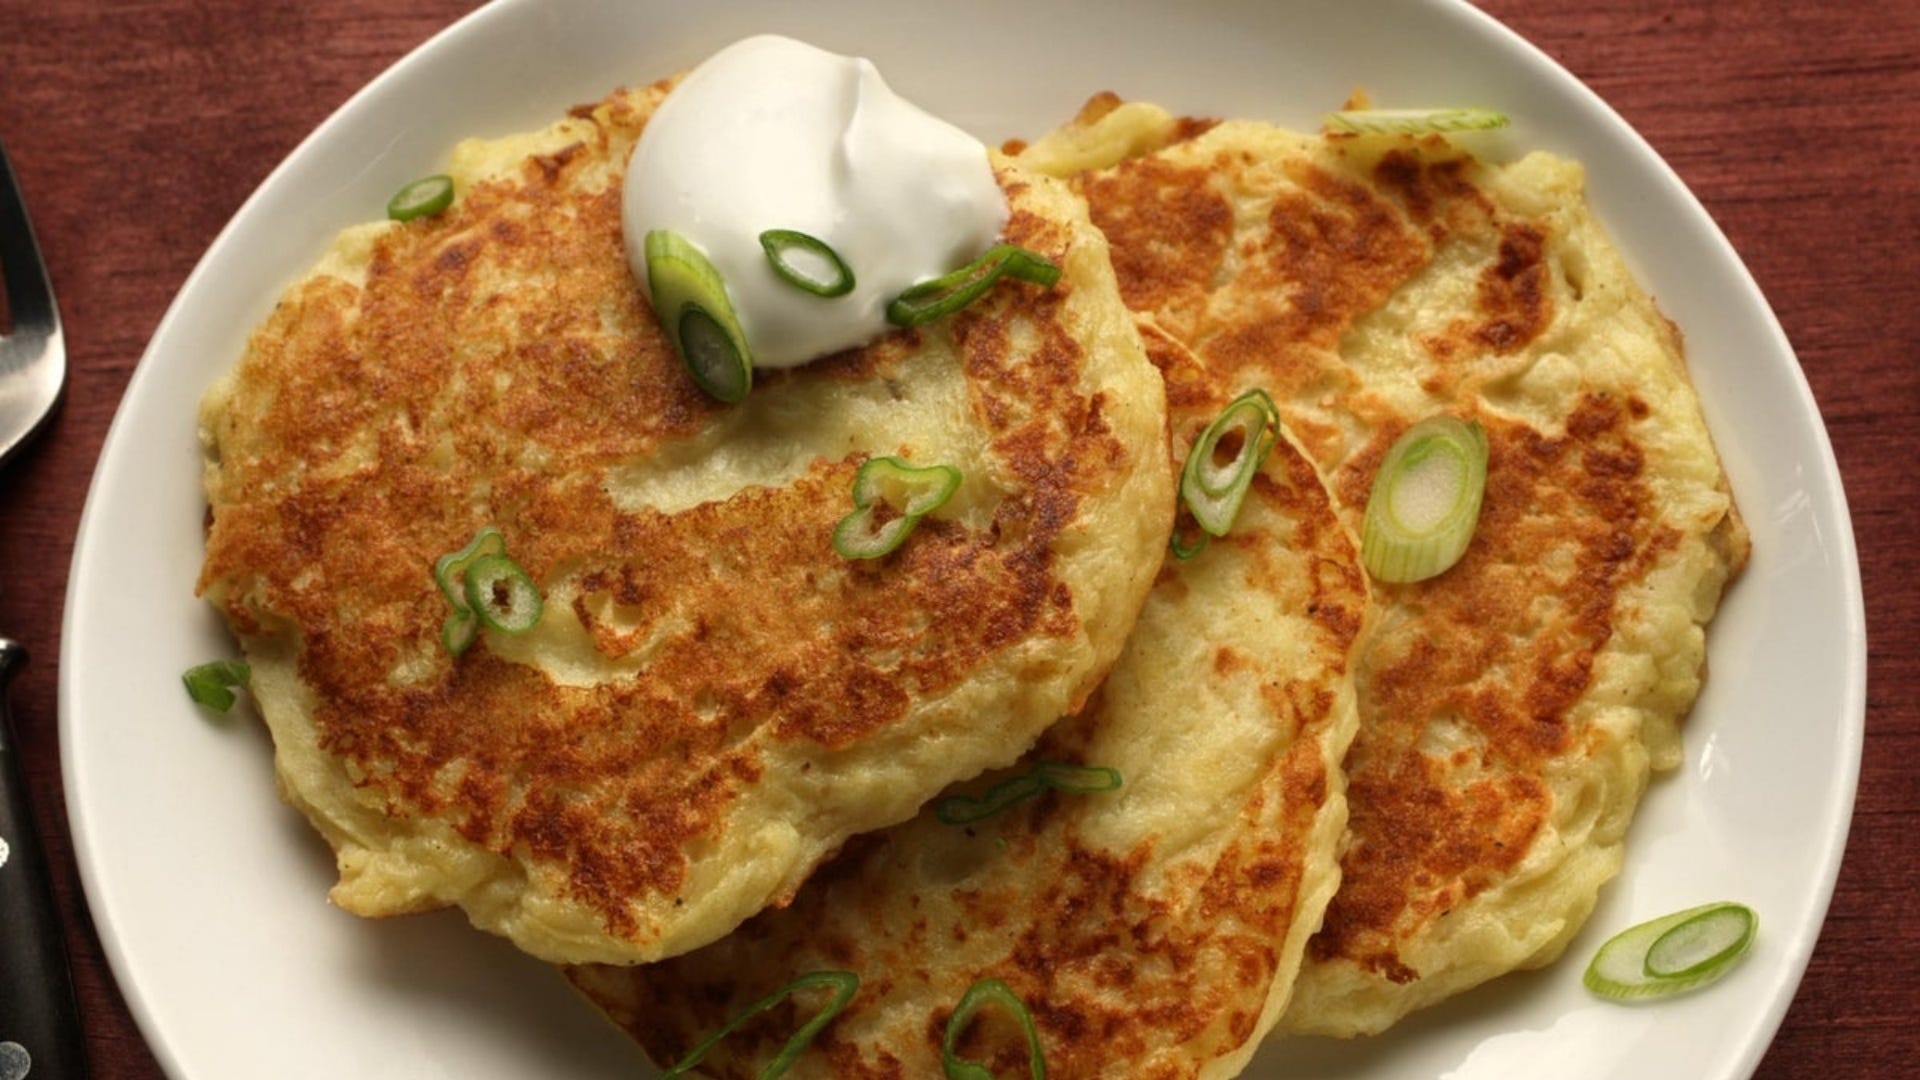 Potato pancakes on a plate, topped with sour cream and chives.